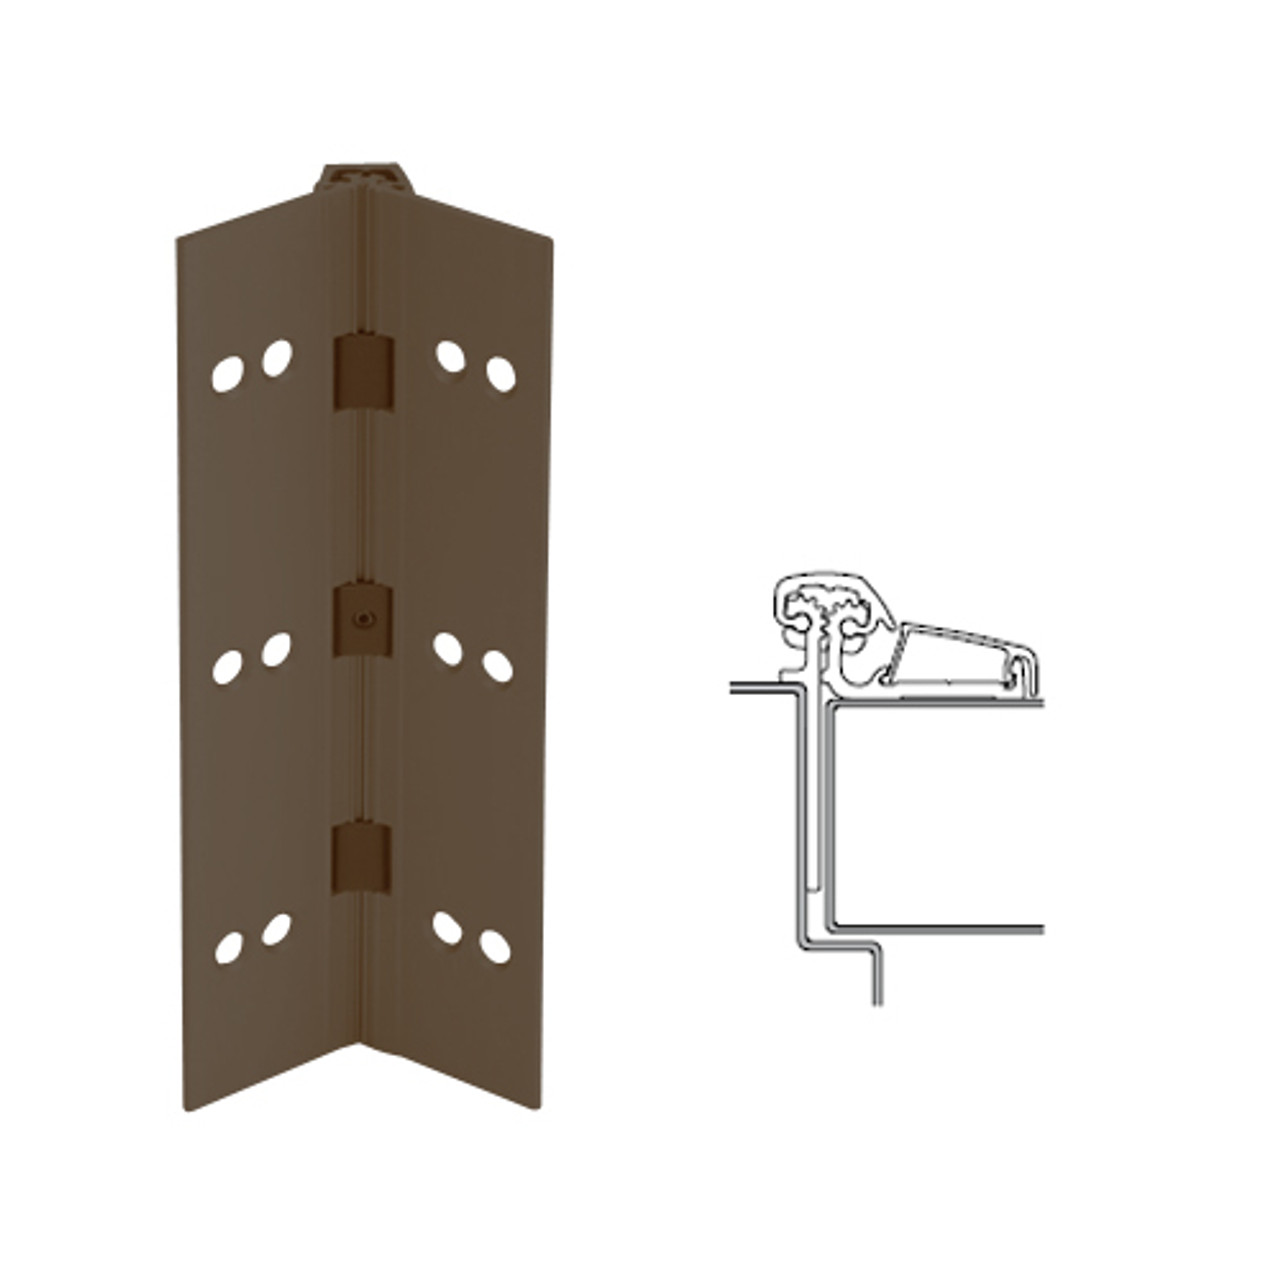 053XY-313AN-83-TEKWD IVES Adjustable Half Surface Continuous Geared Hinges with Wood Screws in Dark Bronze Anodized